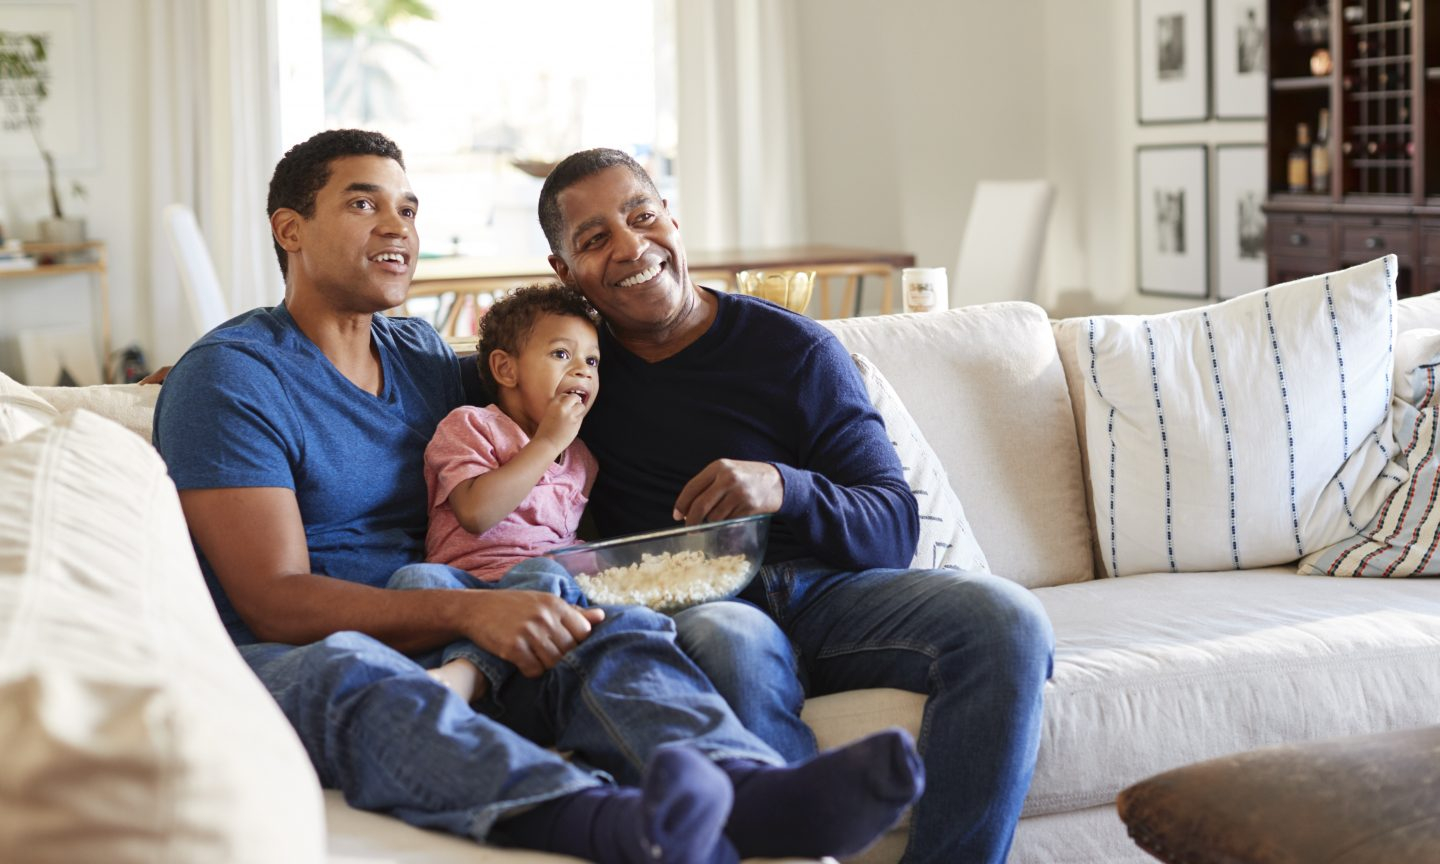 When Is the Best Time to Buy a TV? - NerdWallet